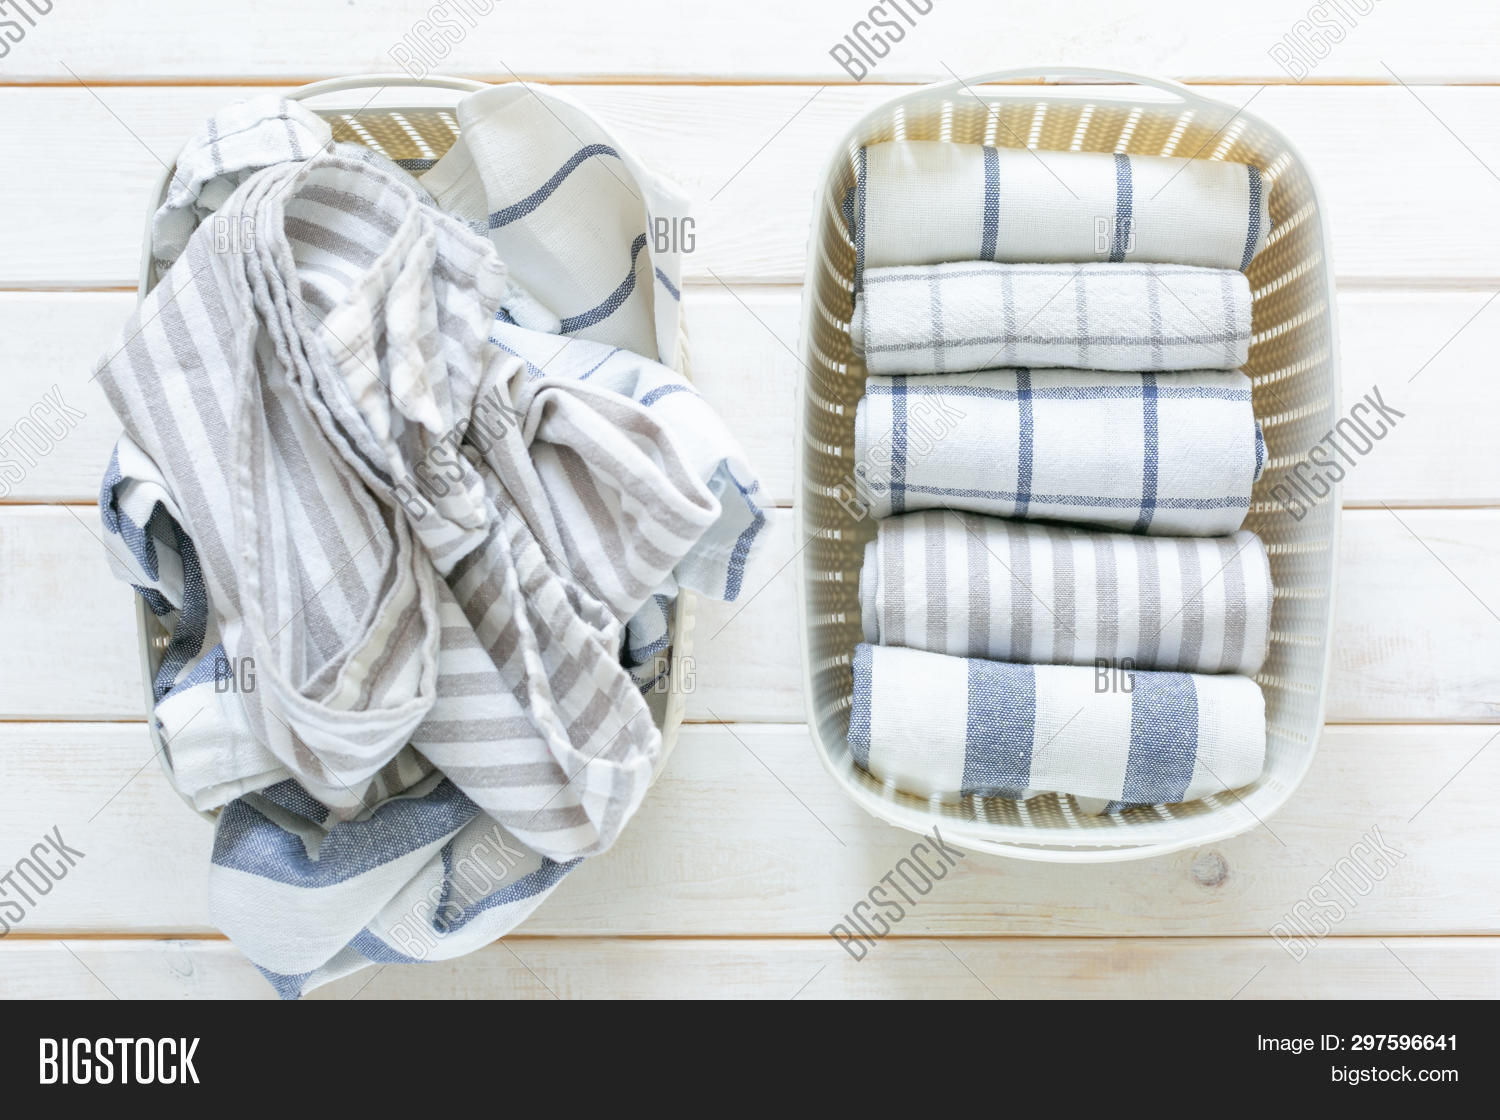 above,after,background,before,blue,bright,clean,closet,clothes,color,declutter,drawer,fashion,folded,interior,kitchen,kondo,konmari,laundry,linen,marie,method,modern,organized,overhead,room,stack,tidy,tidying,top,up,view,white